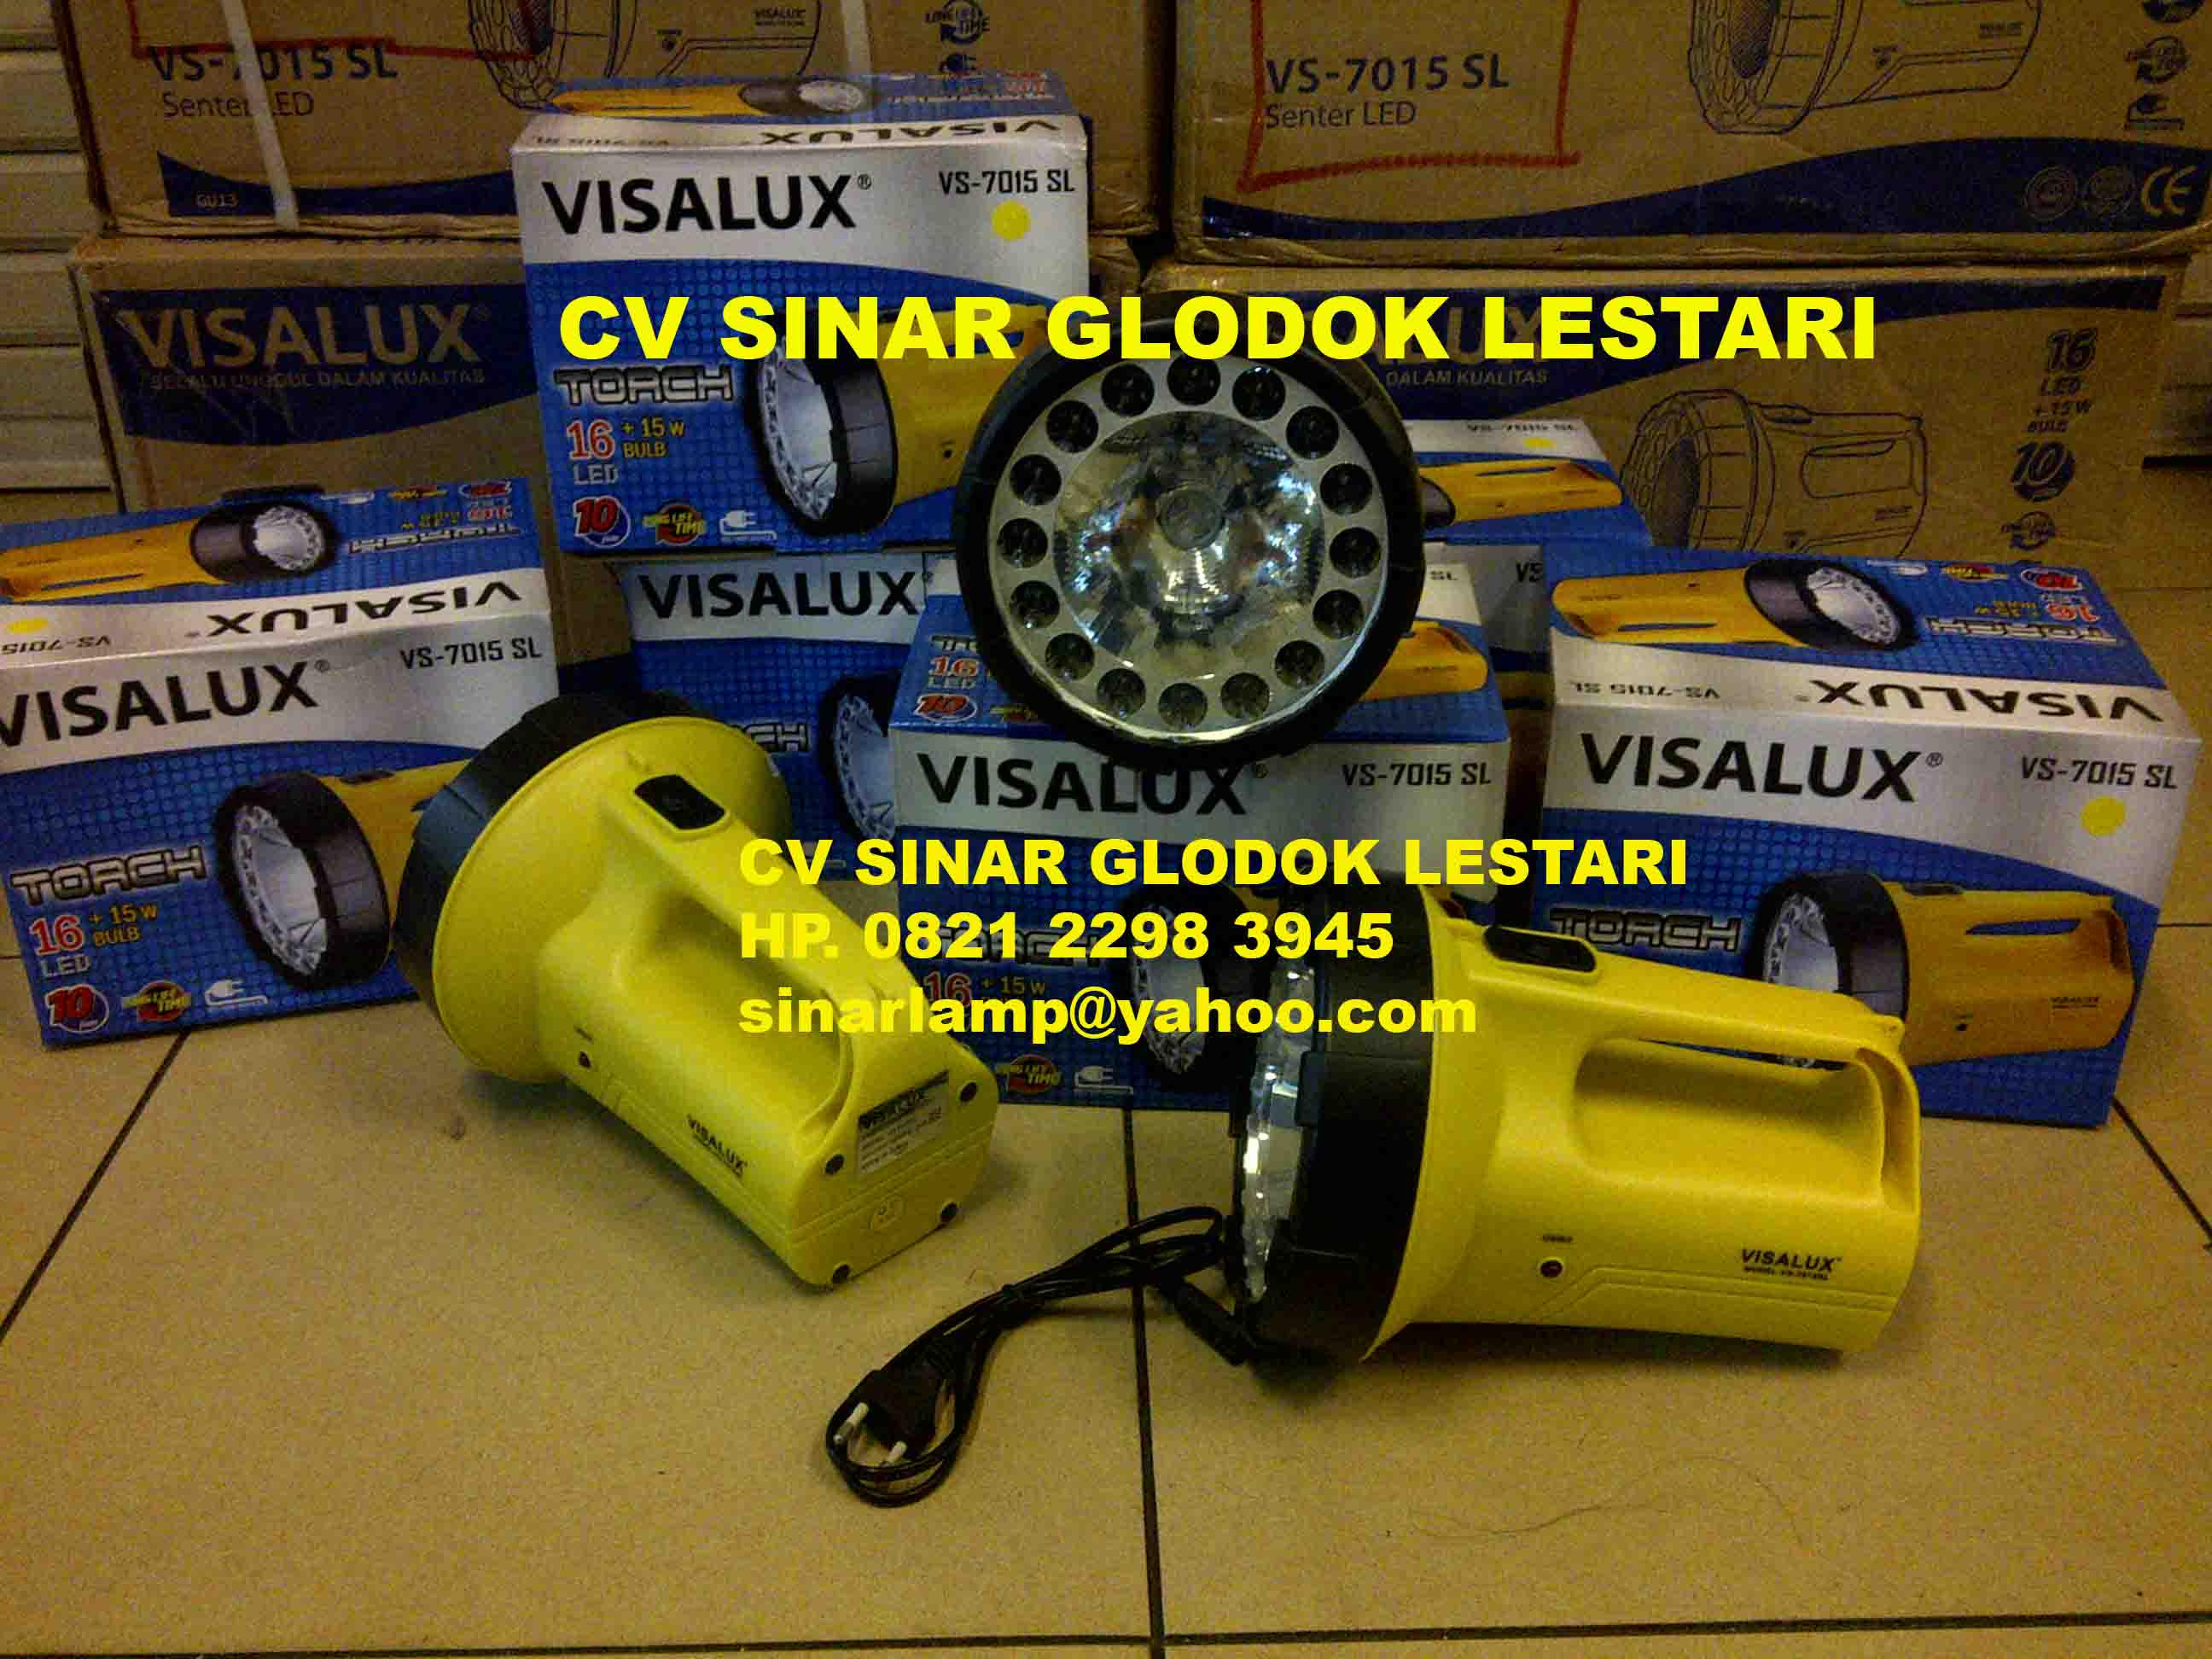 Senter Rechargeable VS 7015 SL VISALUX